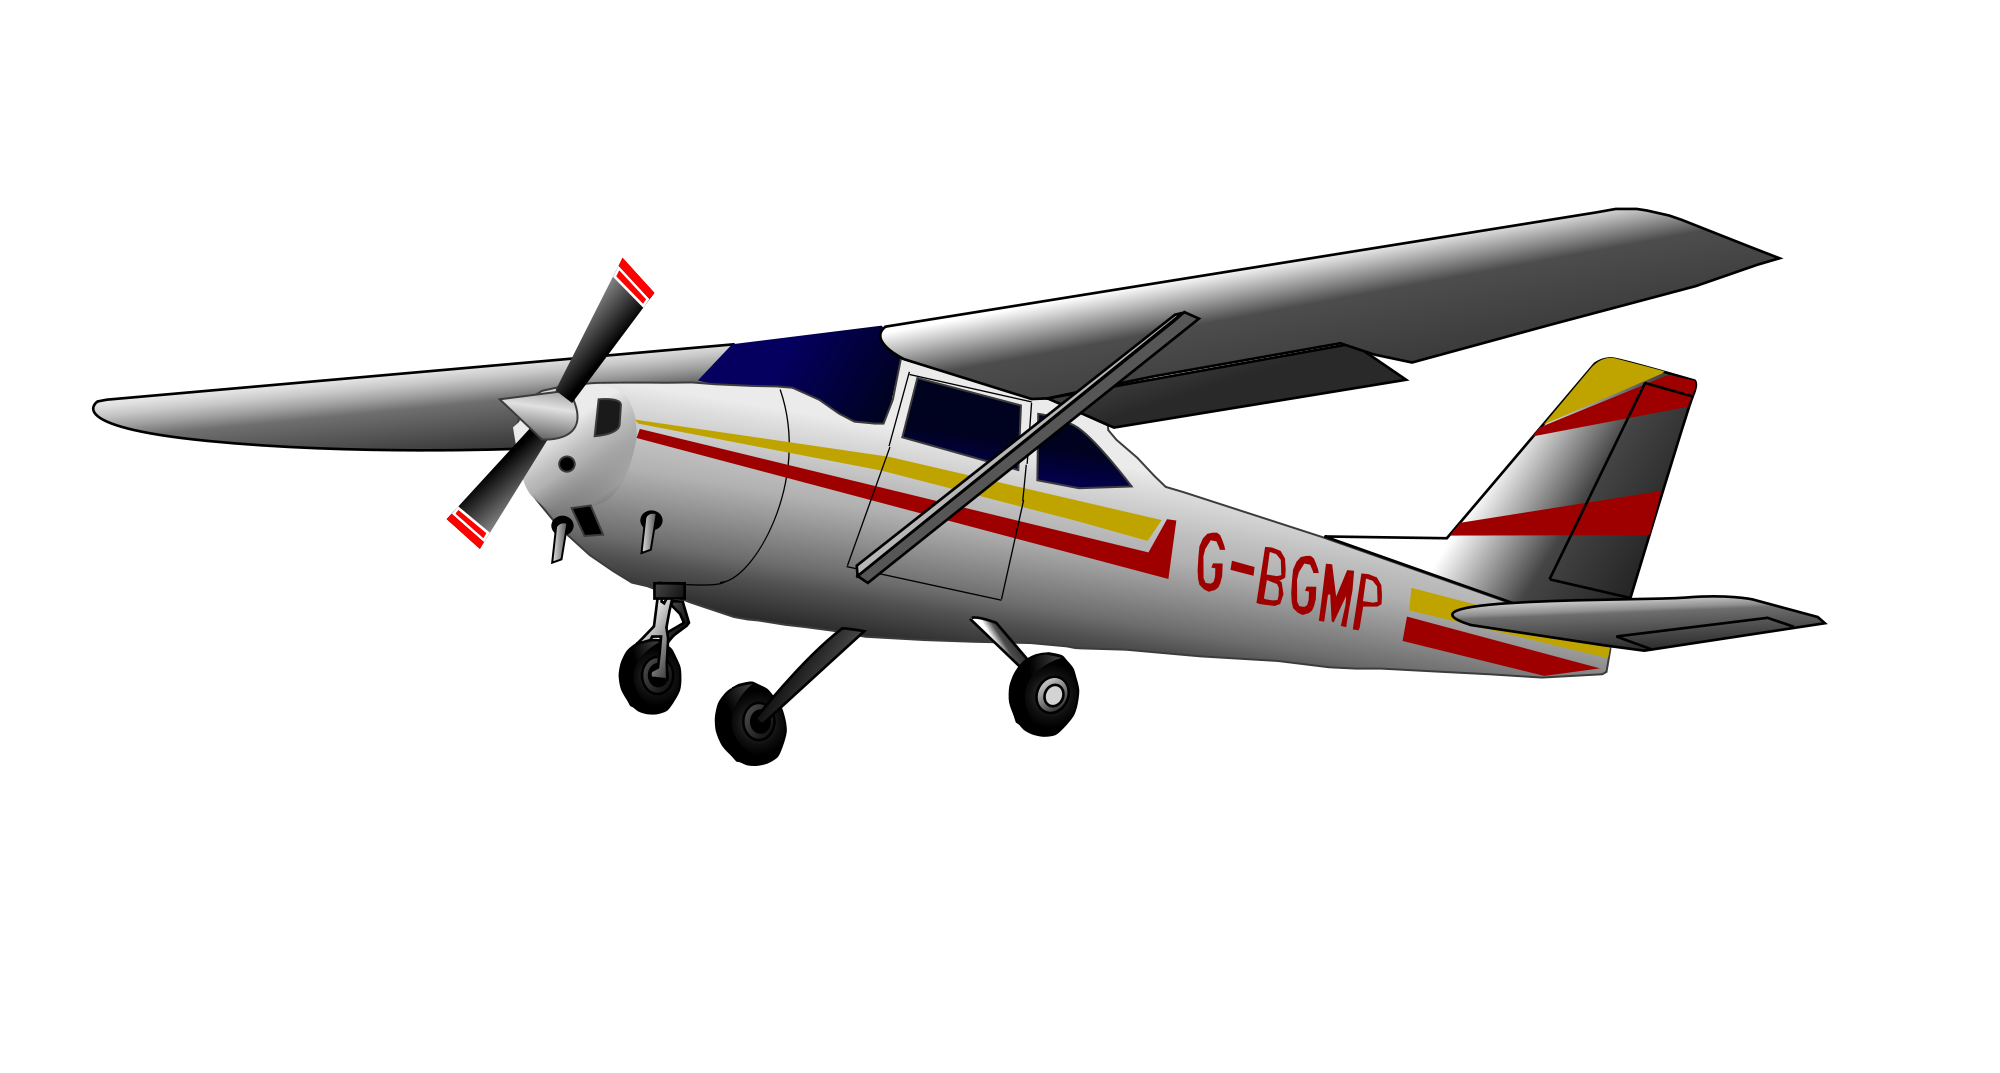 Svg airline cessna. File barleevisco wikimedia commons